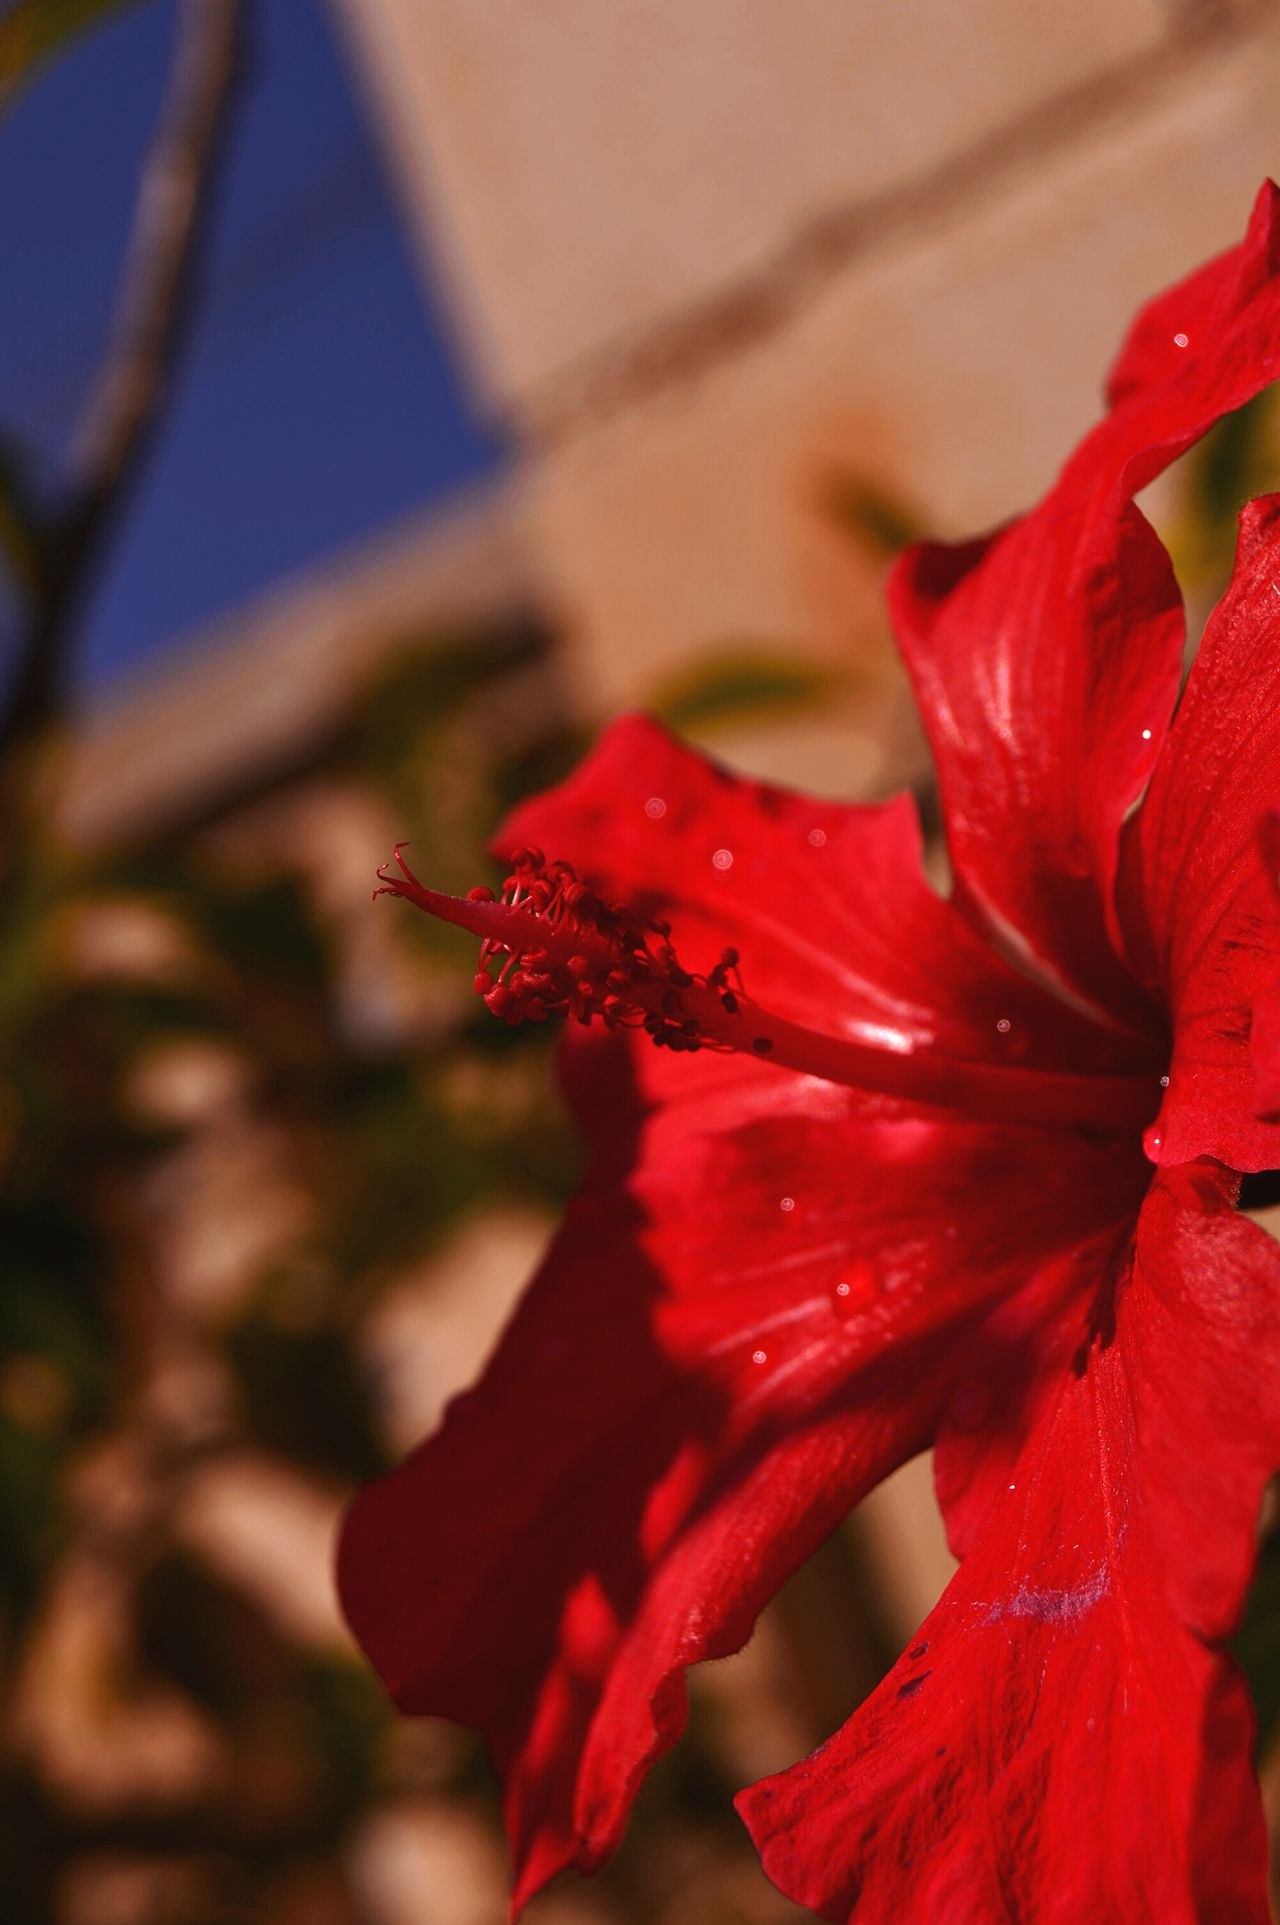 Flower Red Beauty In Nature Nature Petal Plant Day Outdoors Denia Love Flooring Happy Day EyeEmNewHere